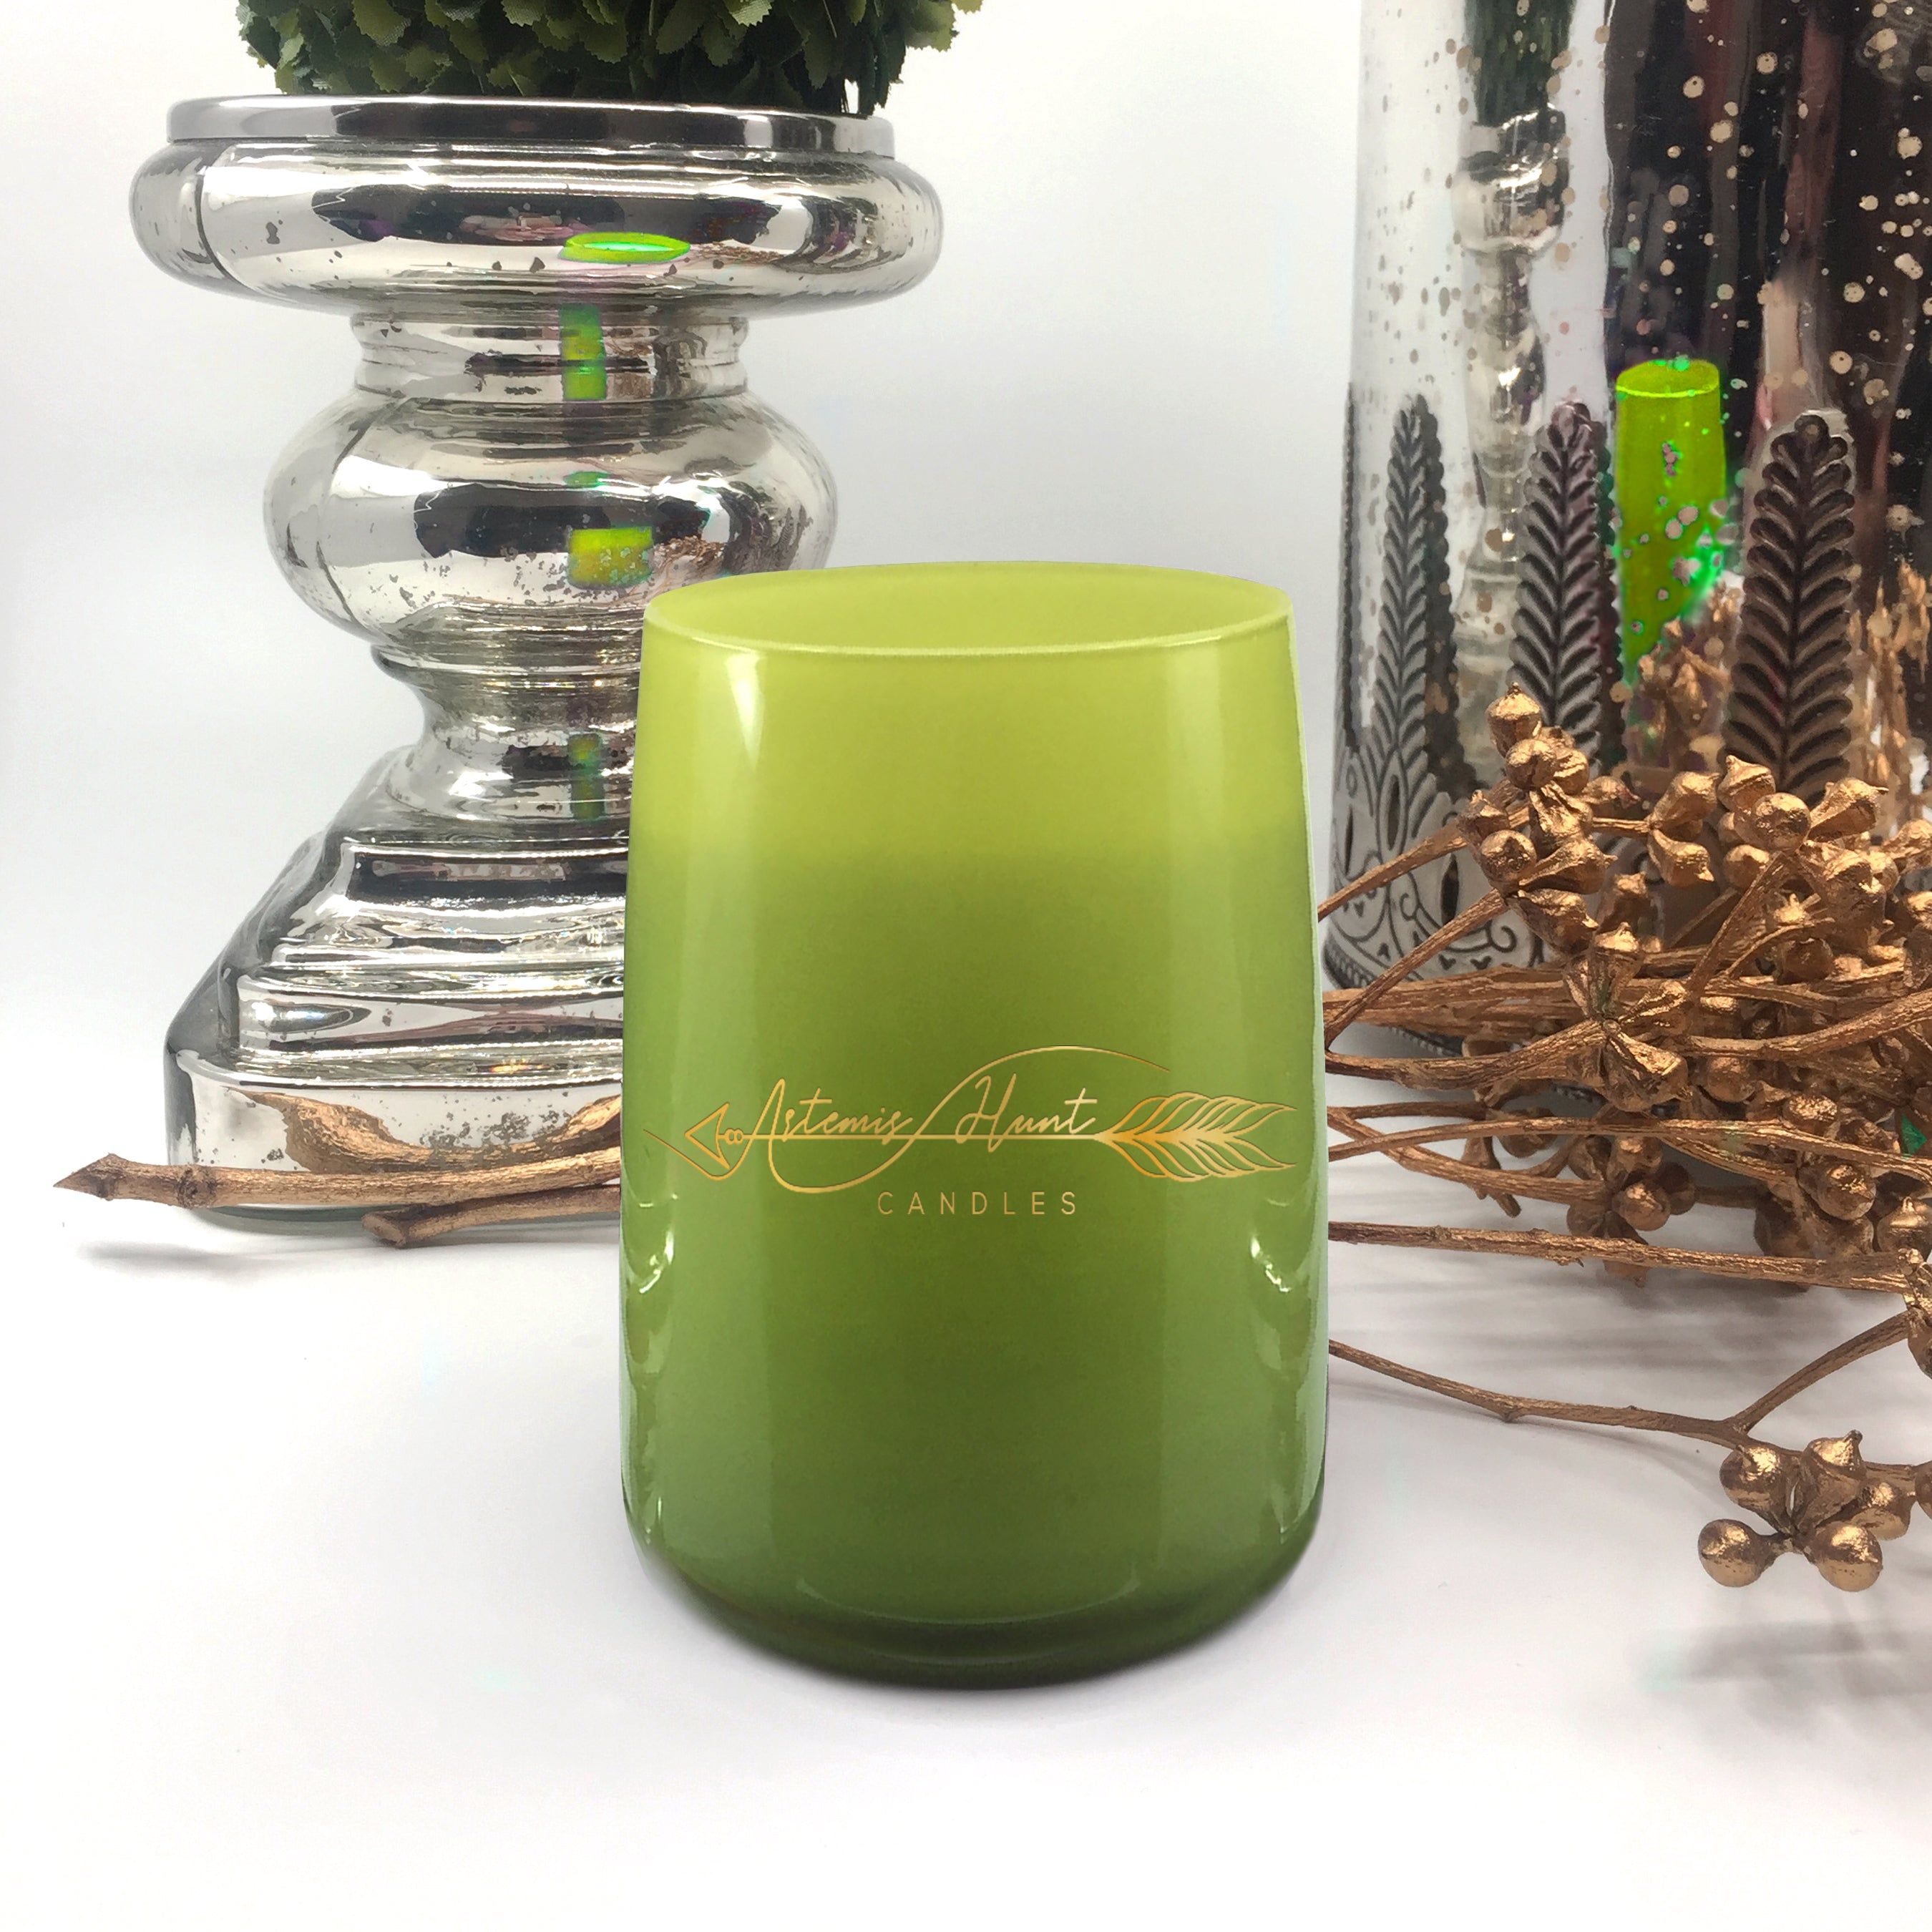 Apollo - Artemis Hunt Candles